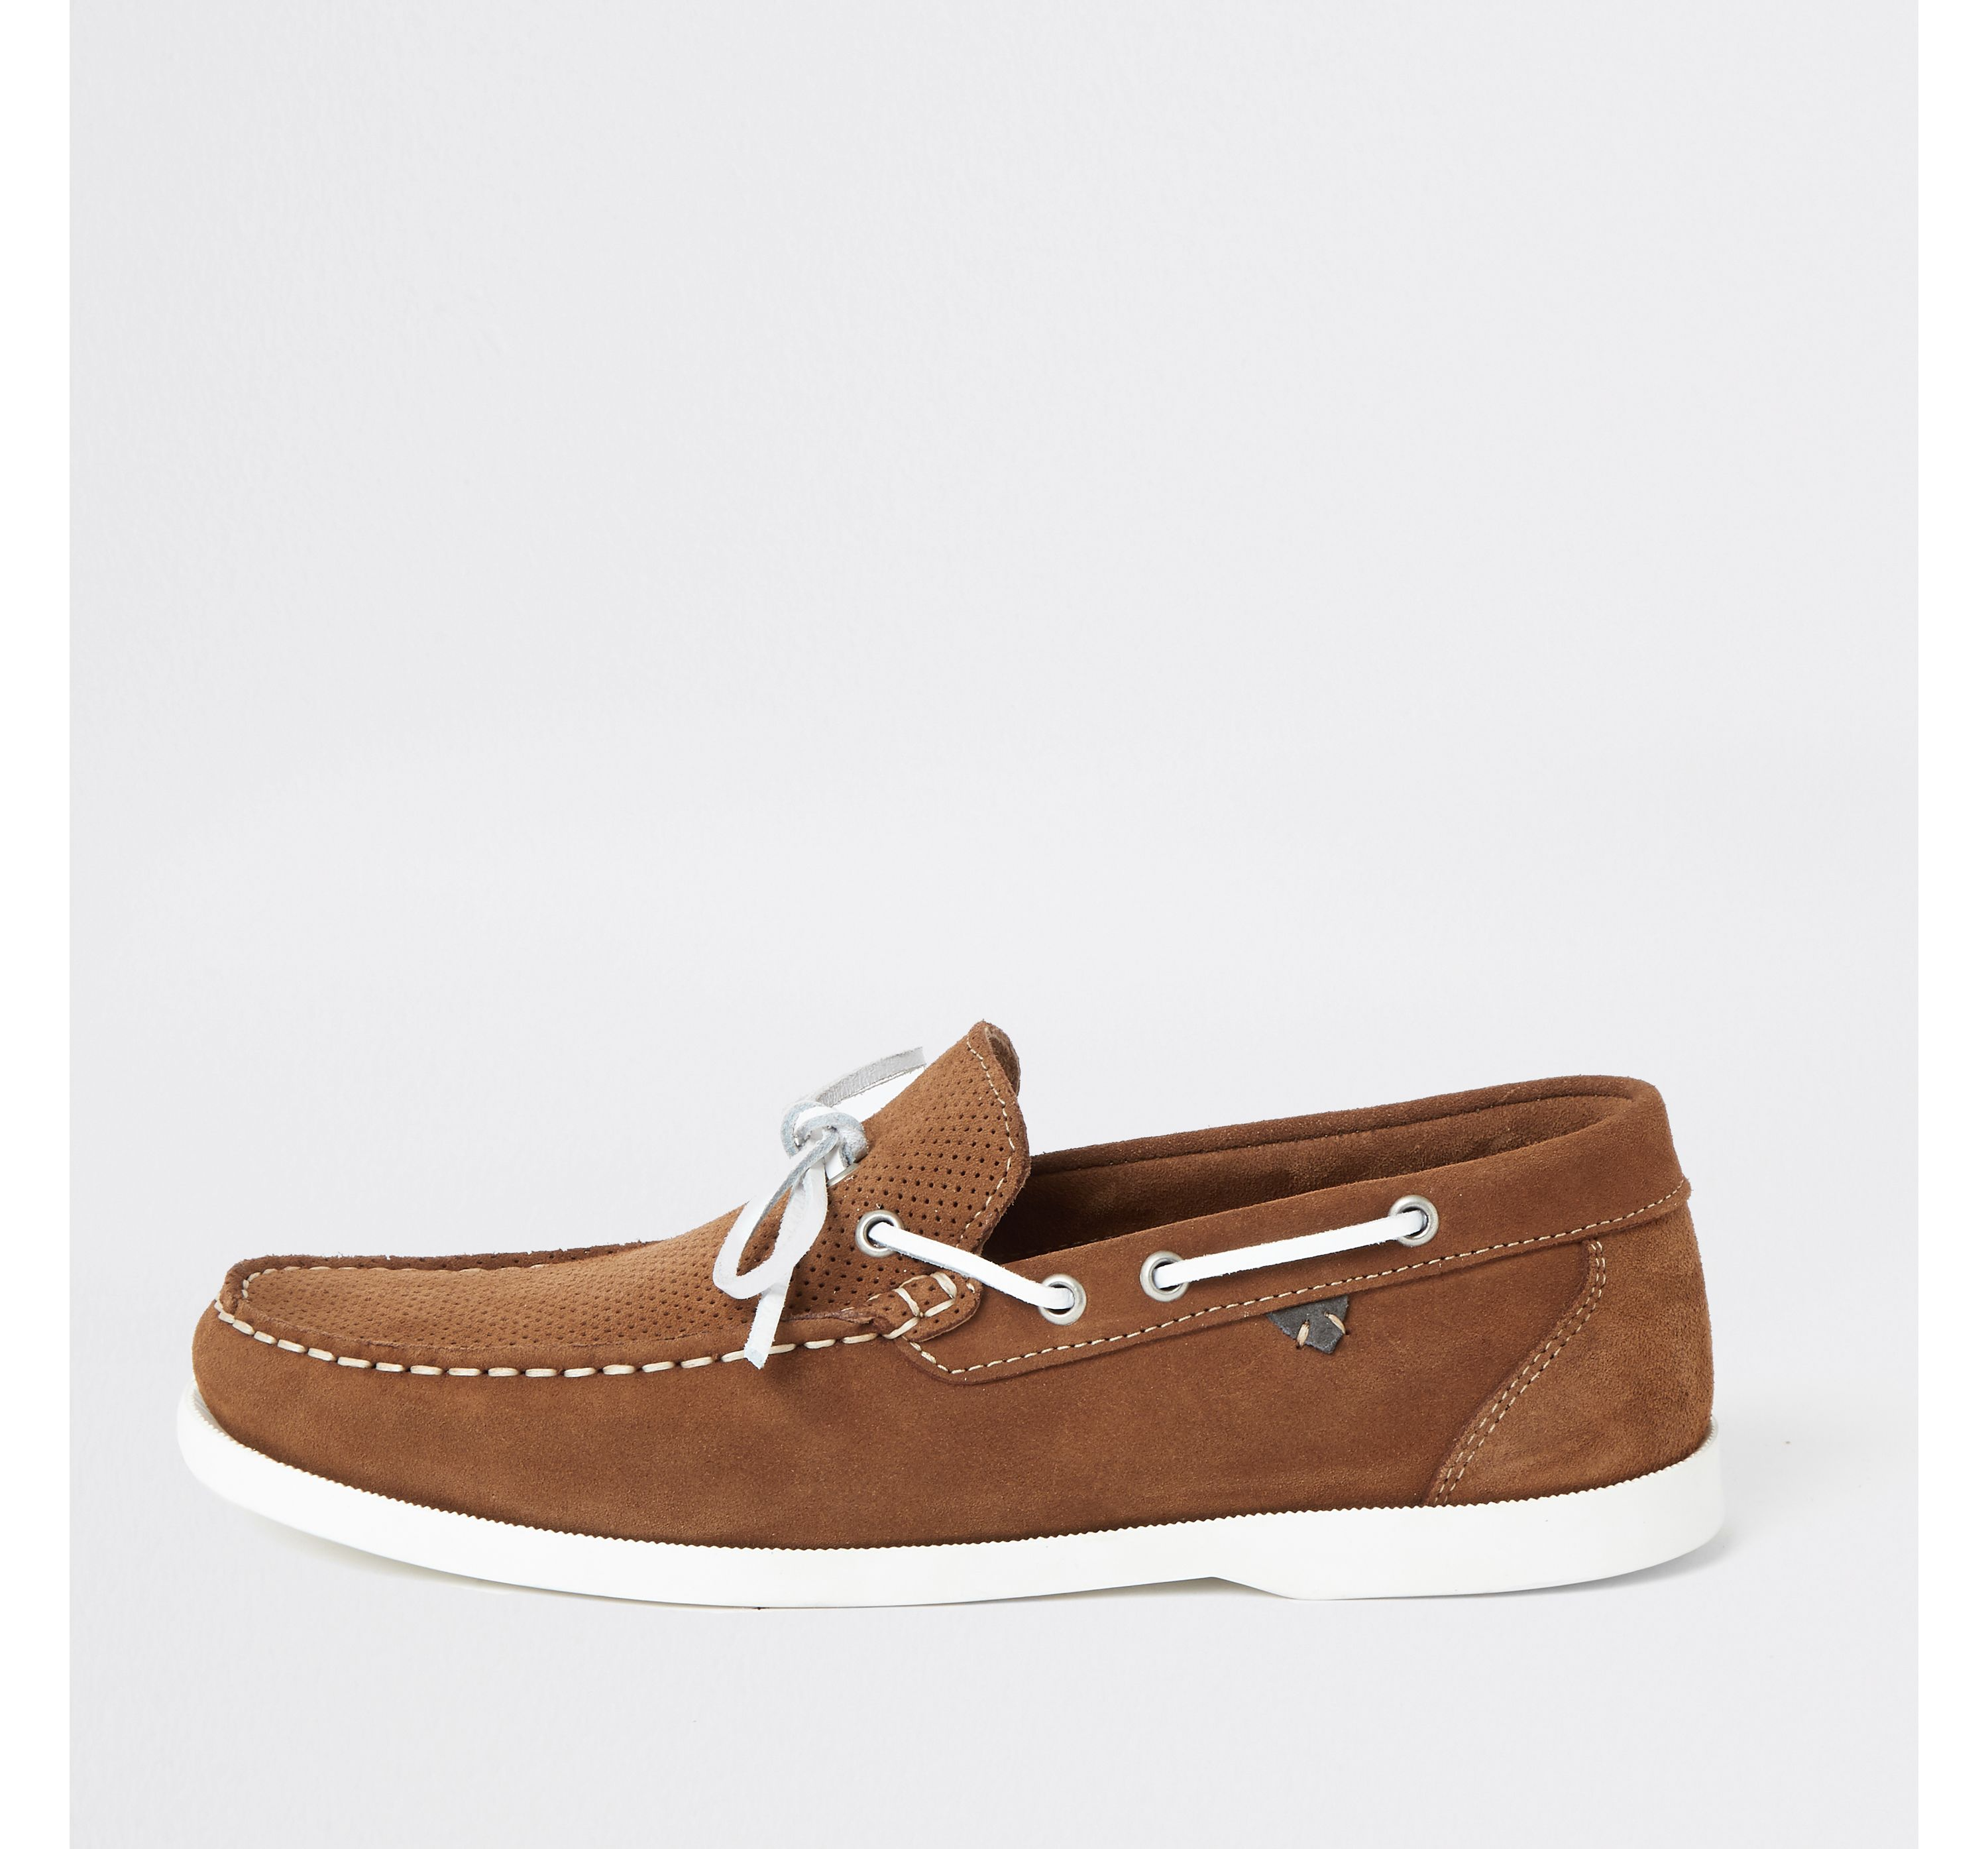 Brown suede boat shoes by River Island